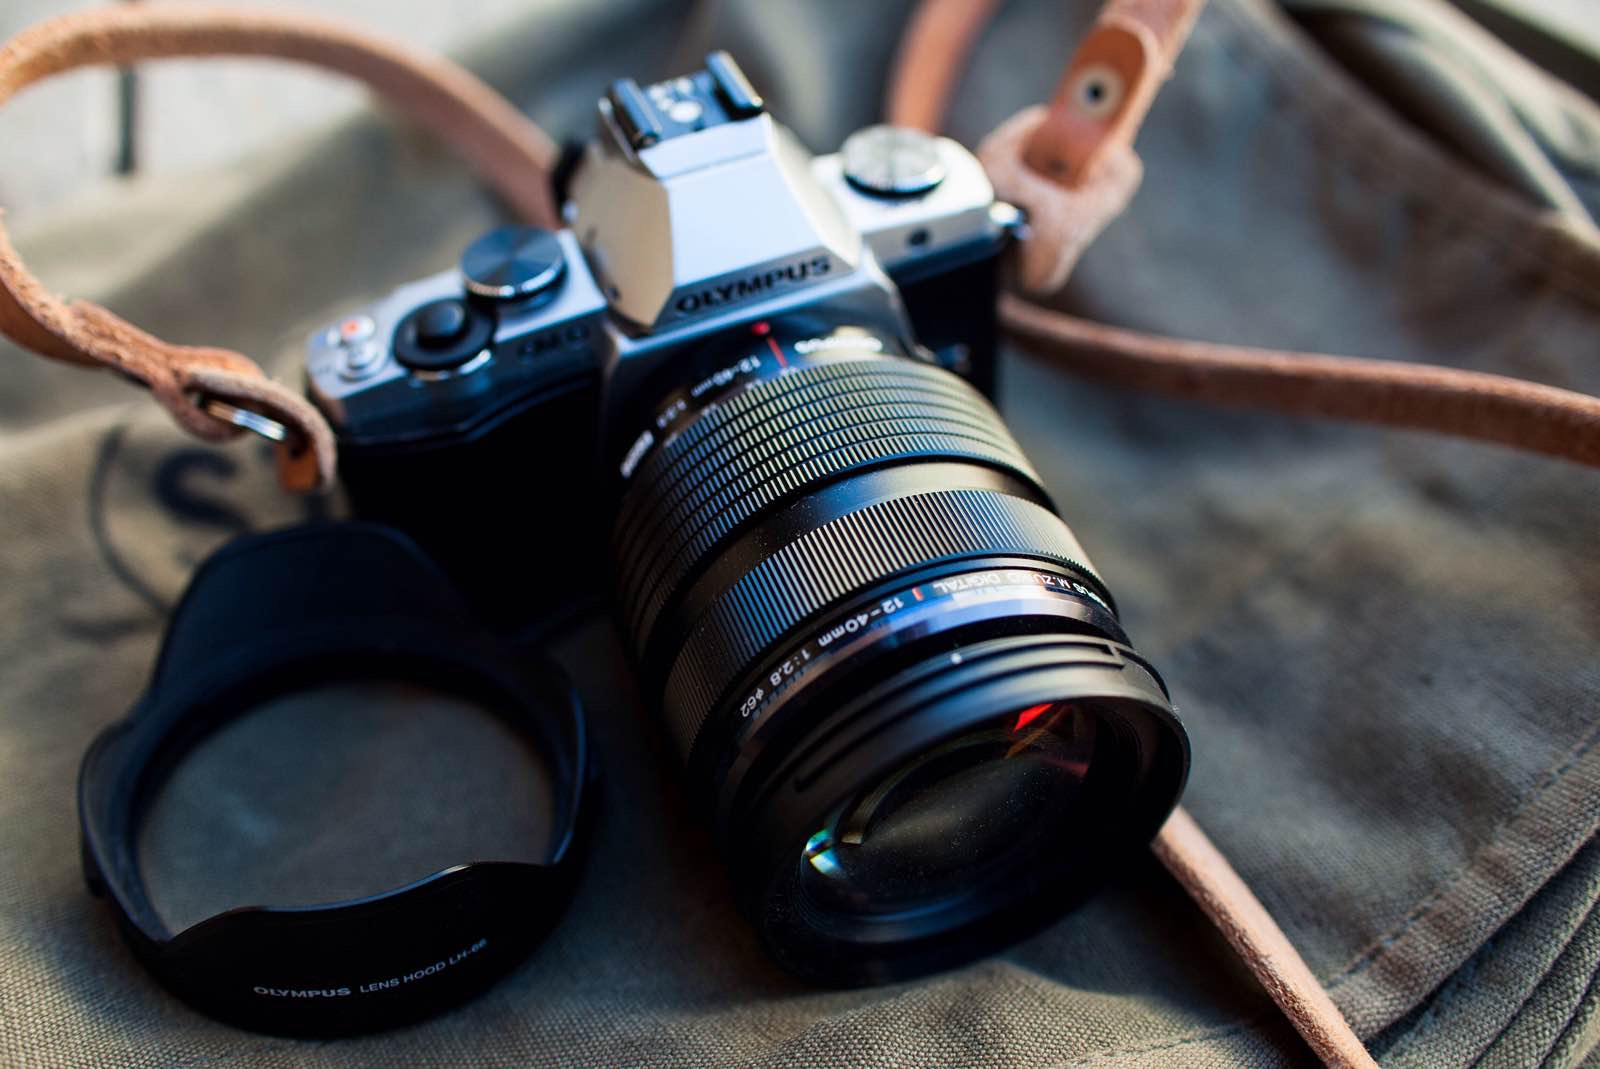 The Olympus 12-40mm f/2.8 zoom lens, attached to an Olympus E-M5. ($999)Photo: Chris Gampat, The Phoblographer